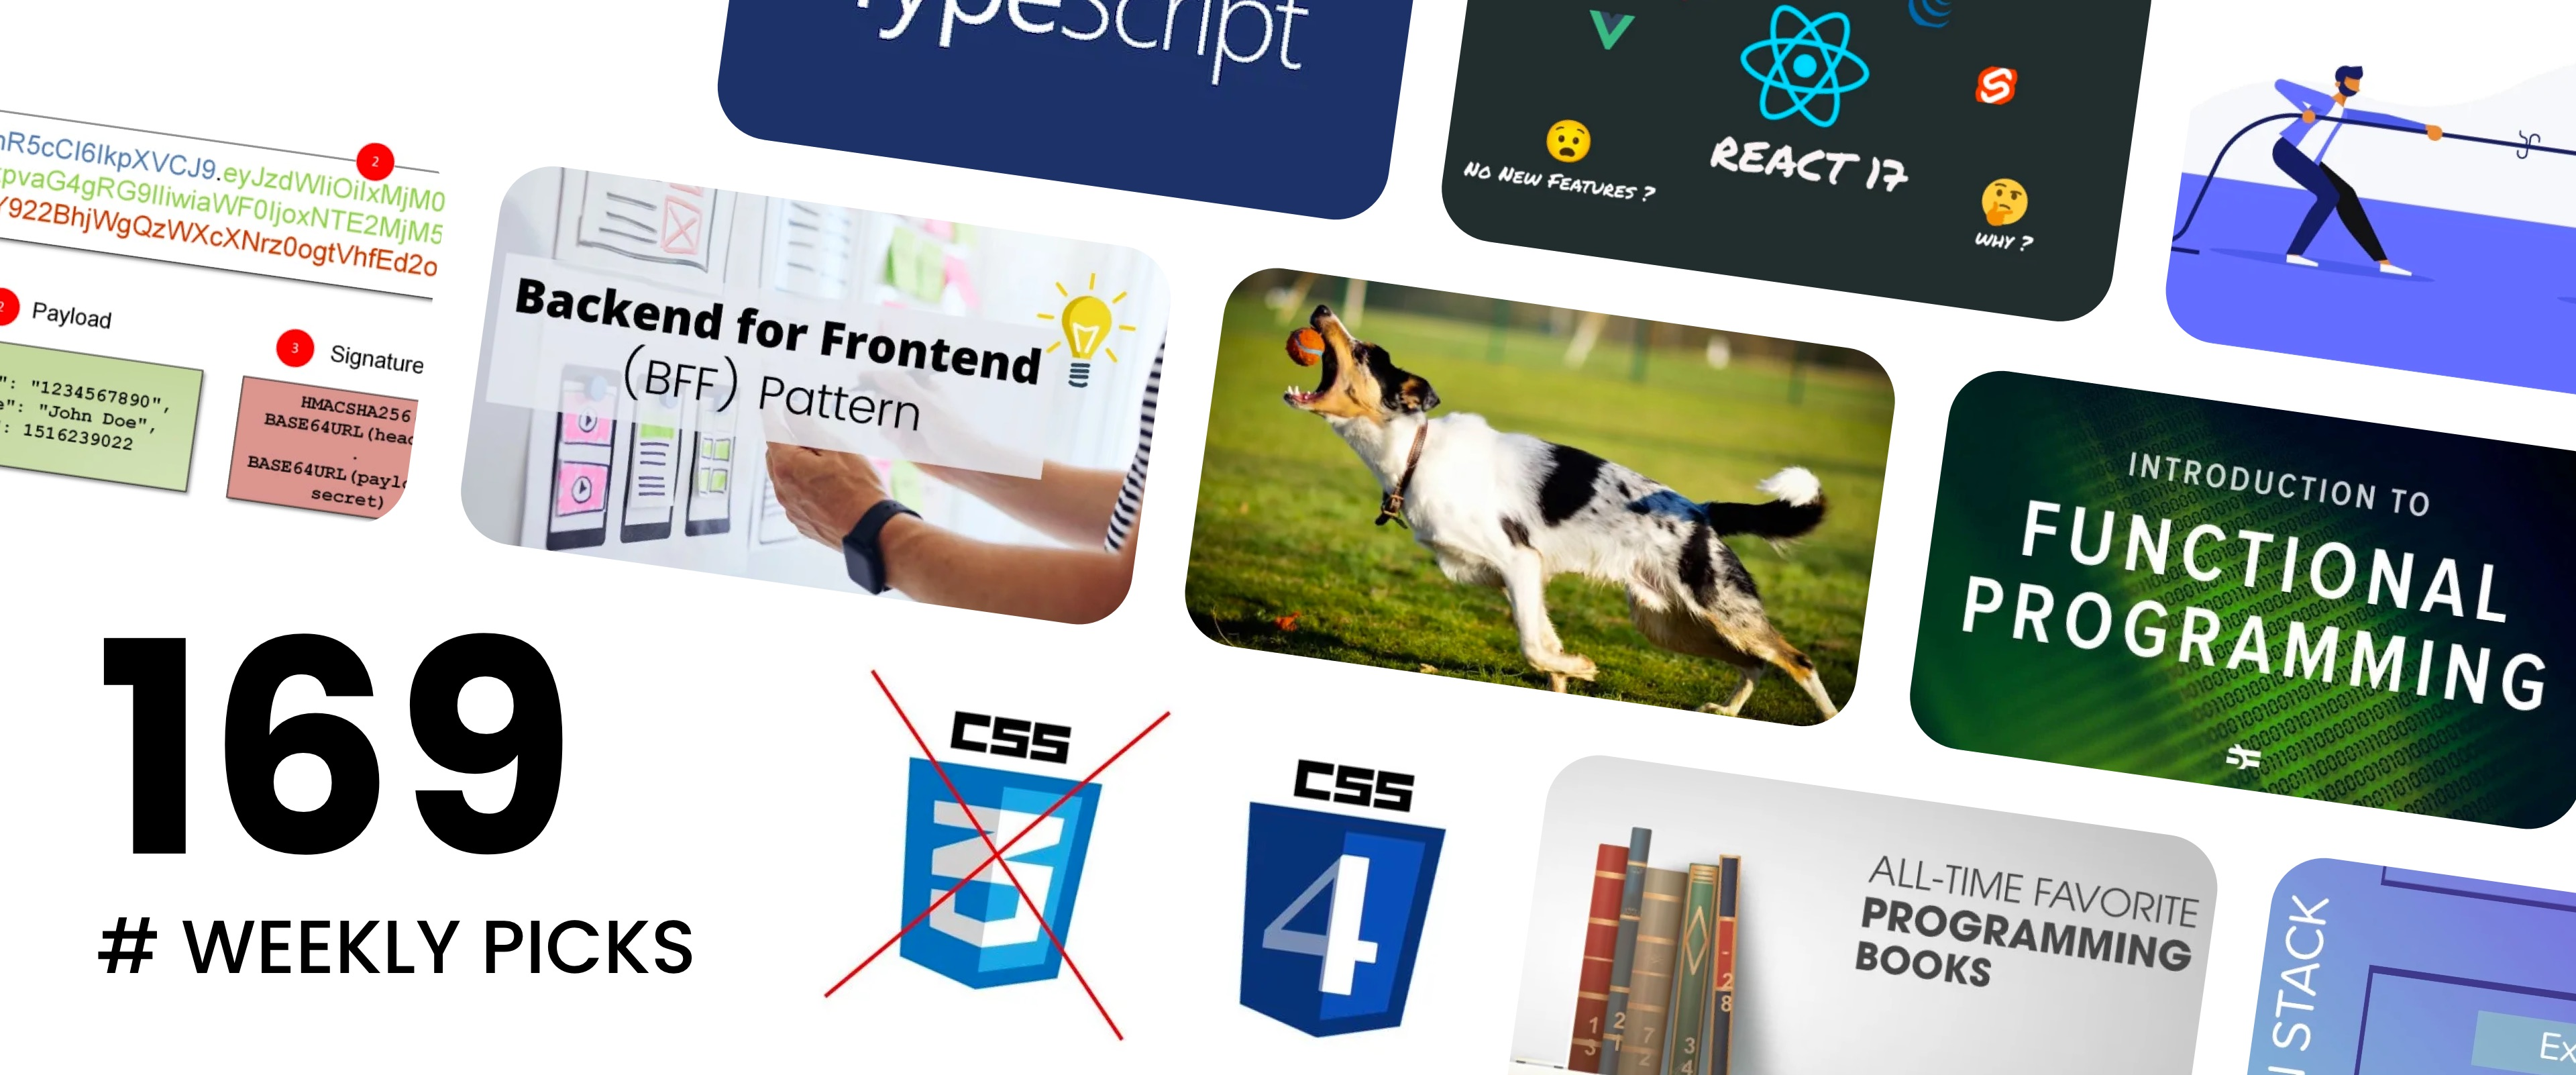 Meet the HERN Stack, TypeScript 4.2, CSS4, 10 All-time favorite books - Picks #169